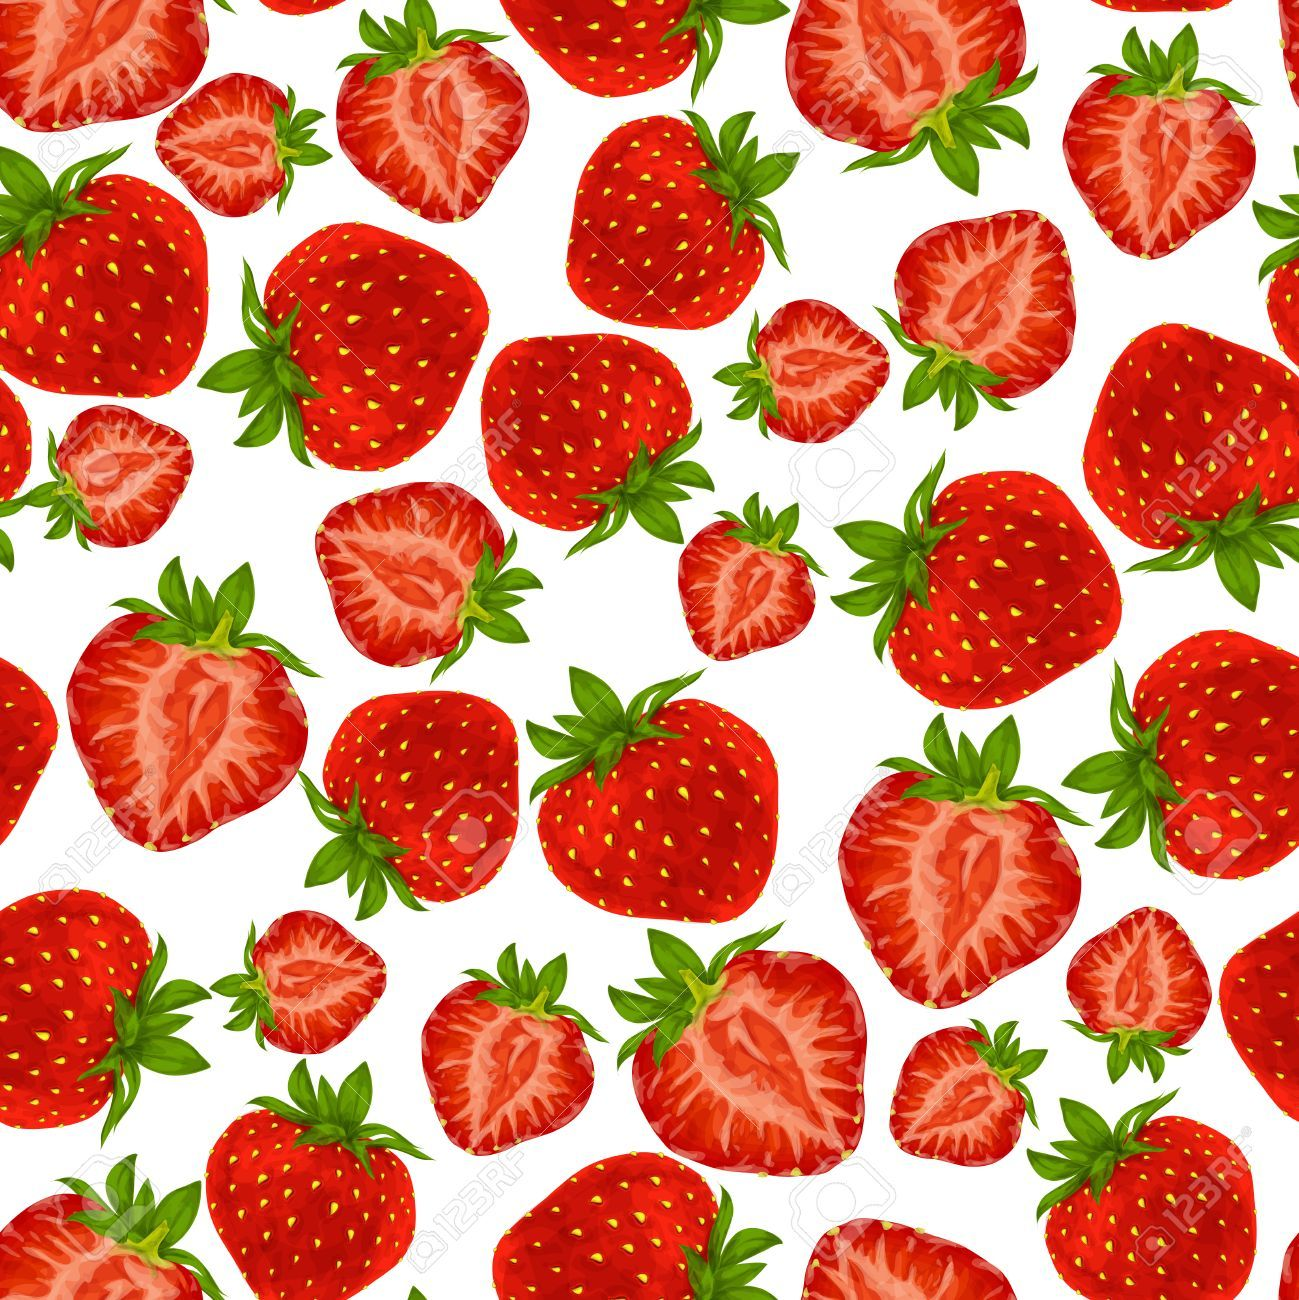 Related image Strawberry background, Seamless patterns